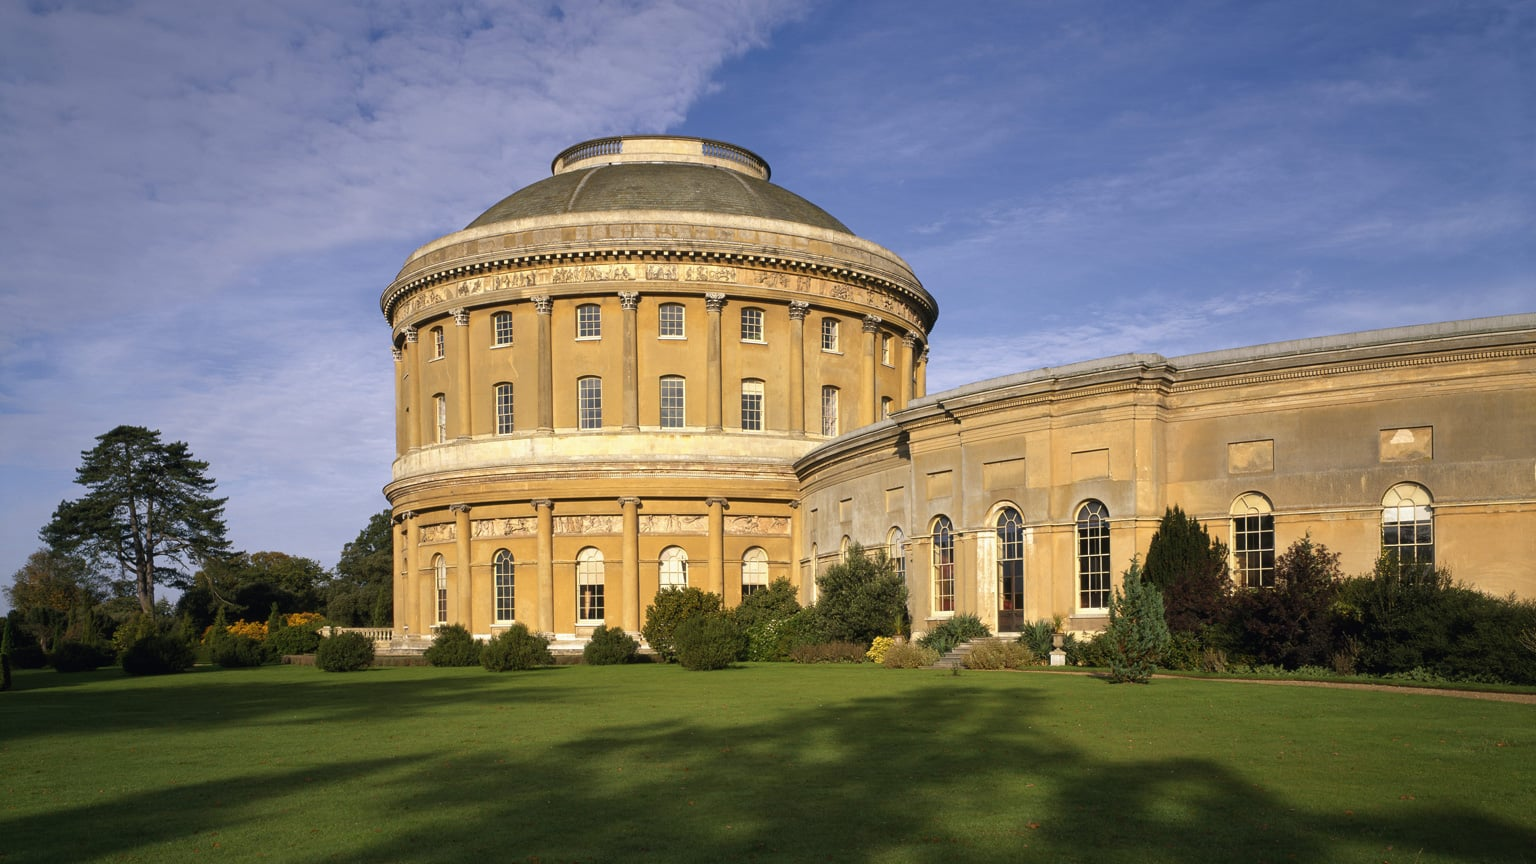 The central rotunda and curved corridor at Ickworth